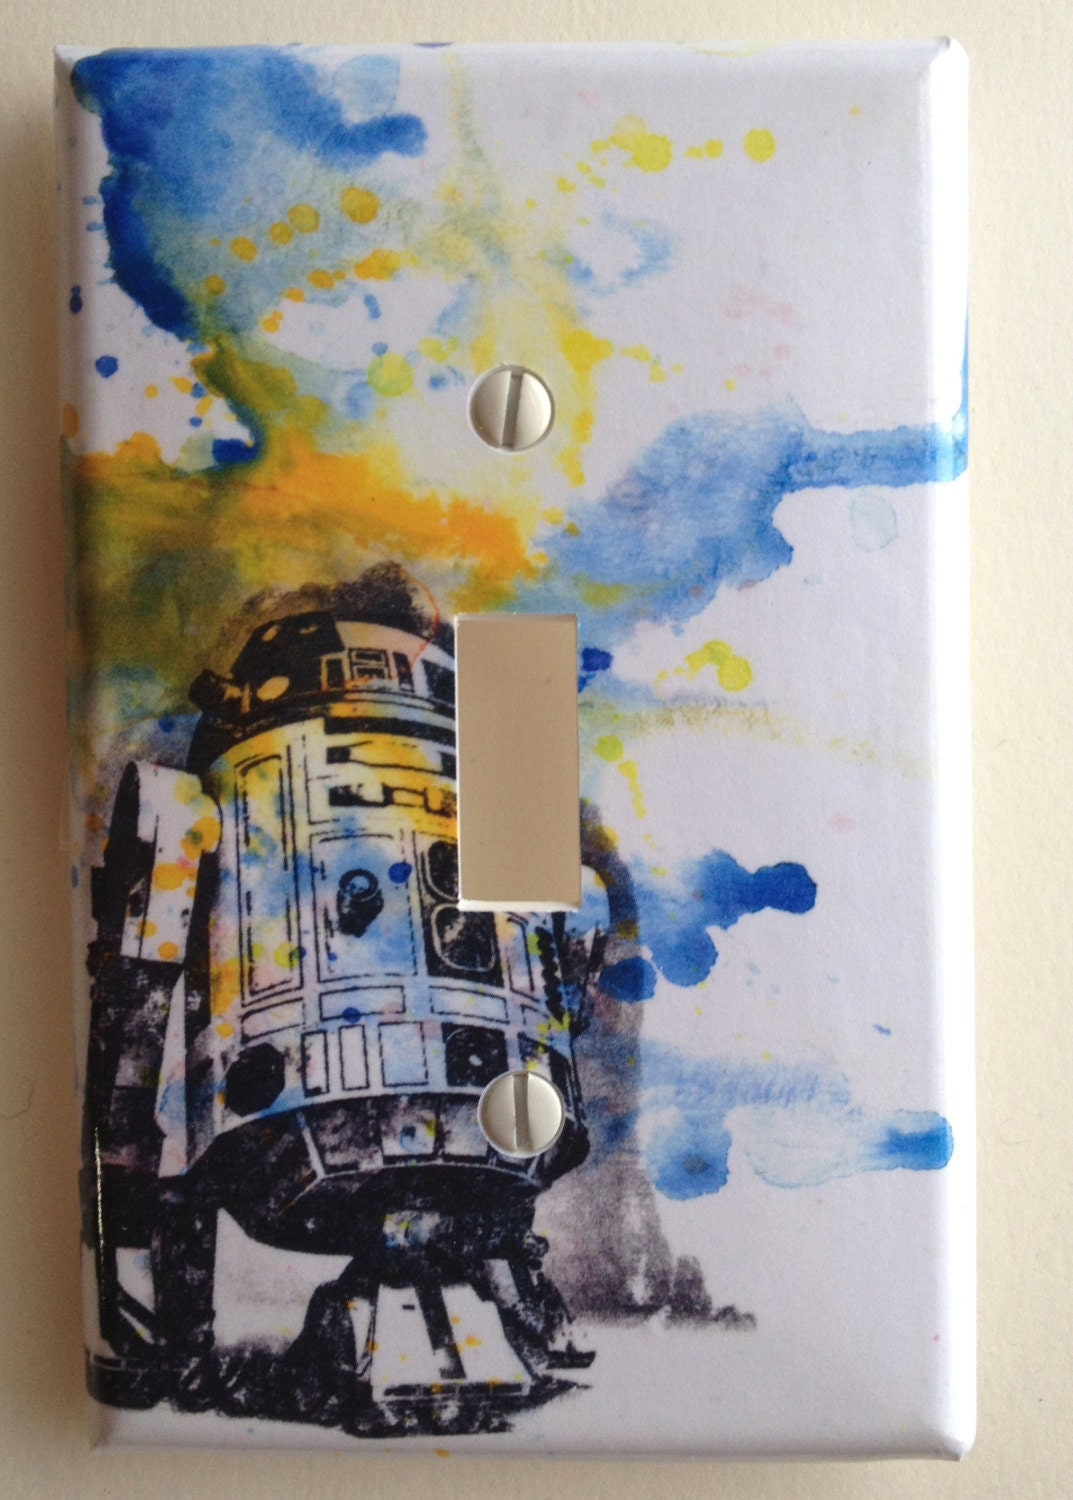 R2d2 Star Wars Decorative Light Switch Cover Plate By Idillard